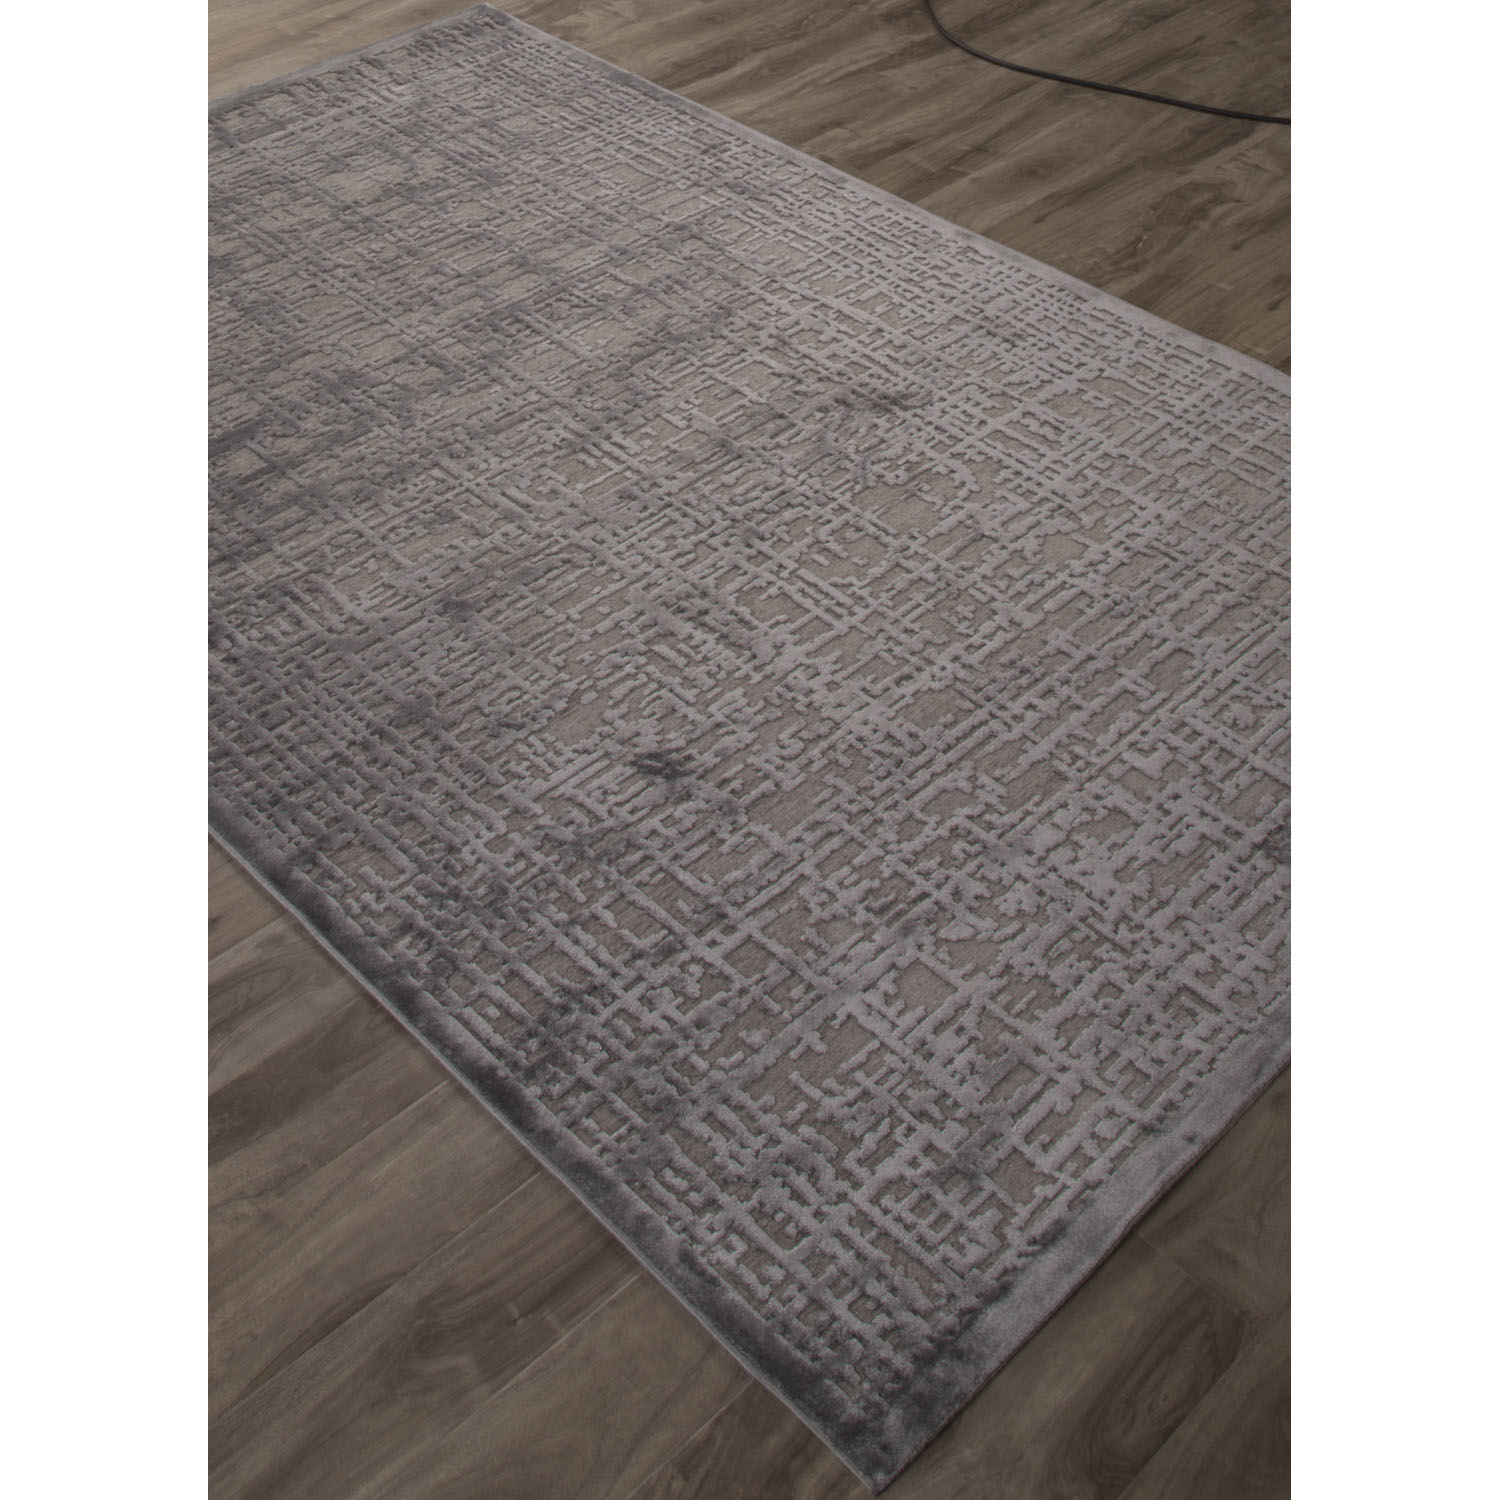 Jaipur Fables FB107 Rug